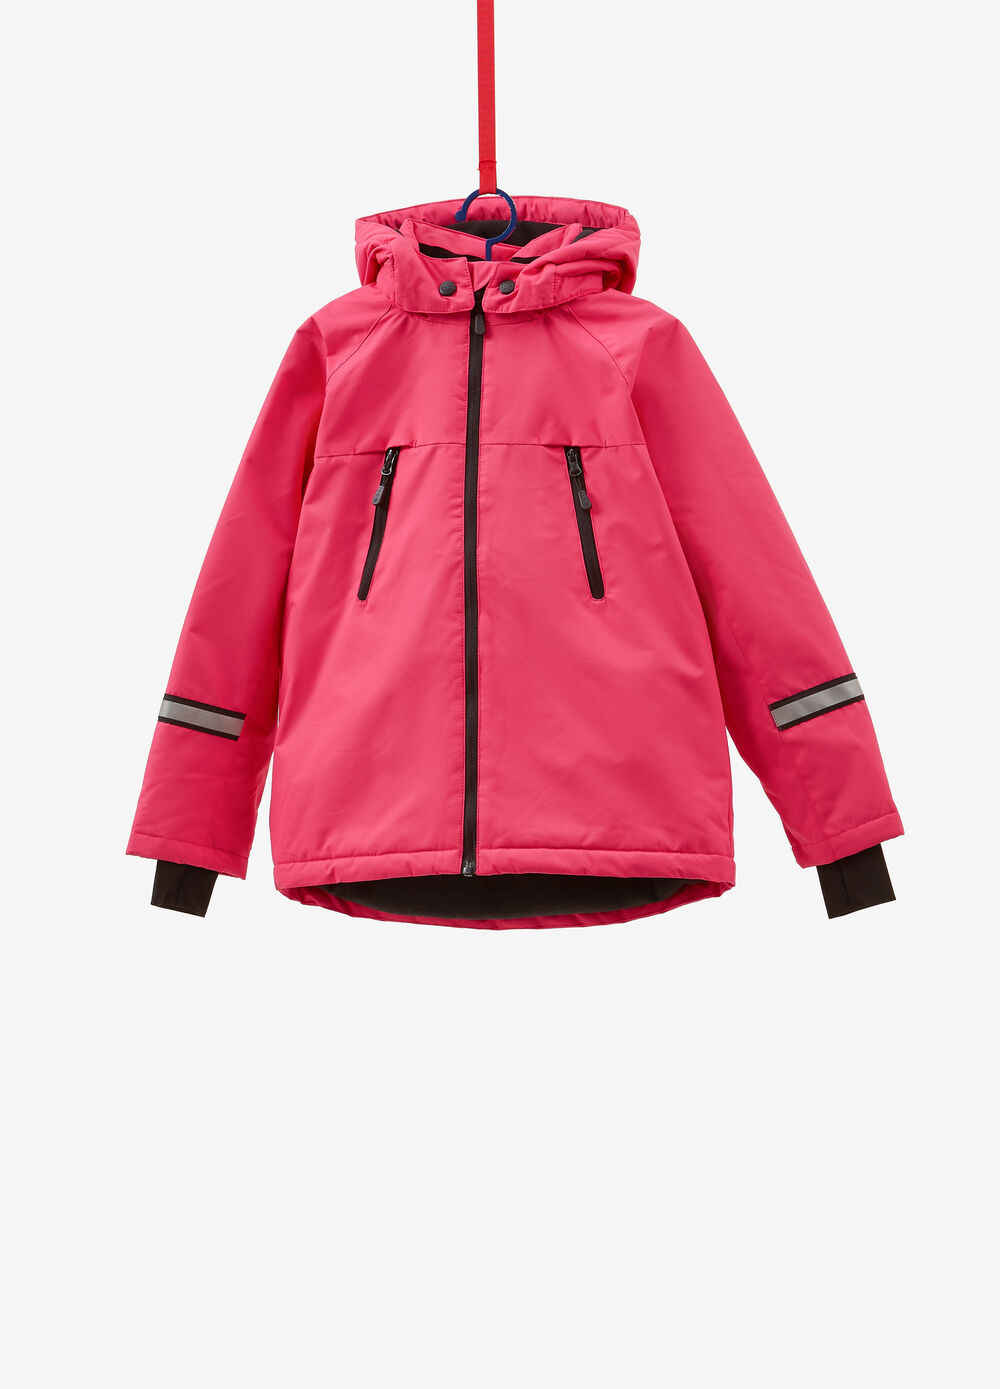 Solid colour ski jacket with hood and zip